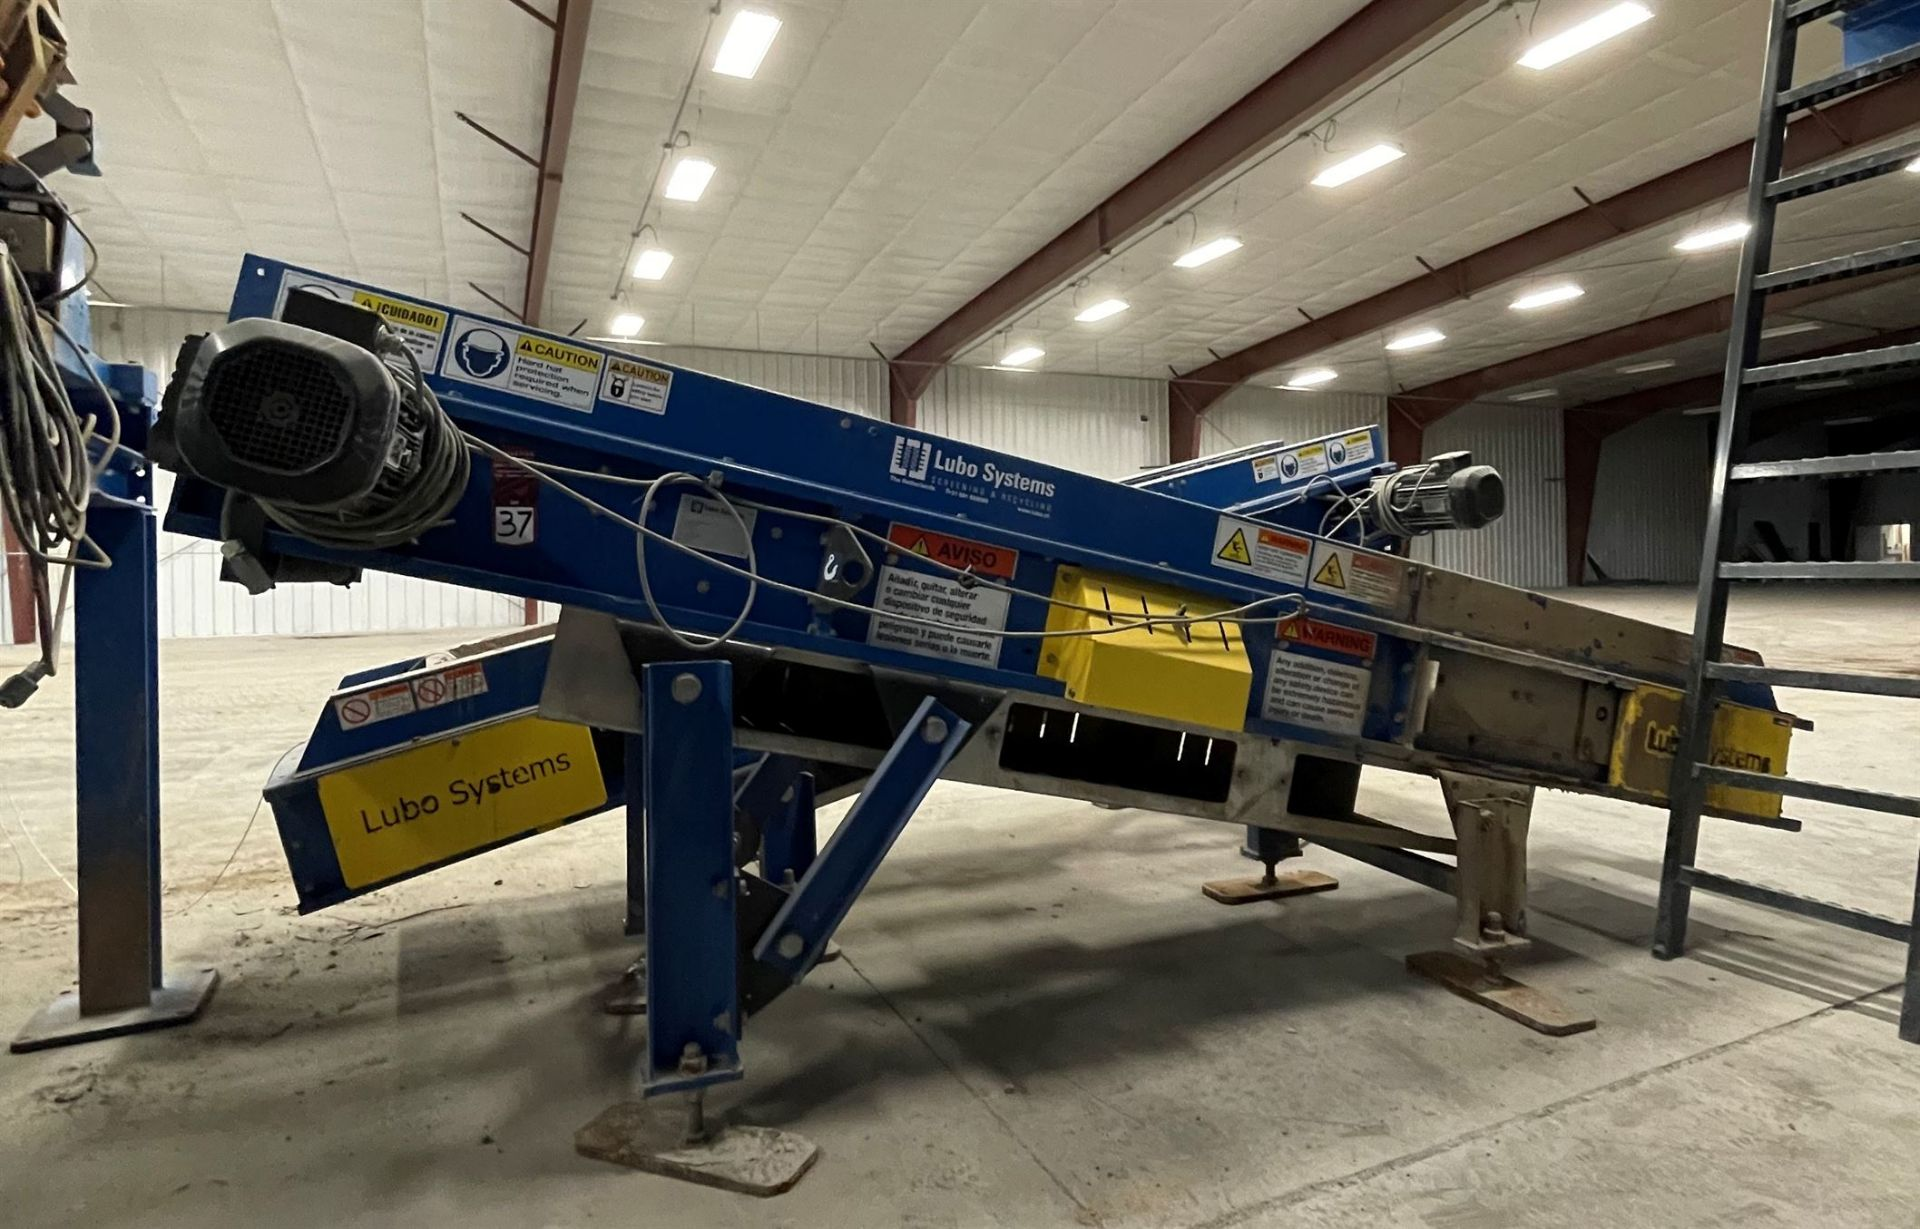 2015 LUBO SYSTEMS TBL 600x3500 Inclined Belt Conveyor, s/n 800108-0280, 600mm x 3500mm, SEW 3.7 kW